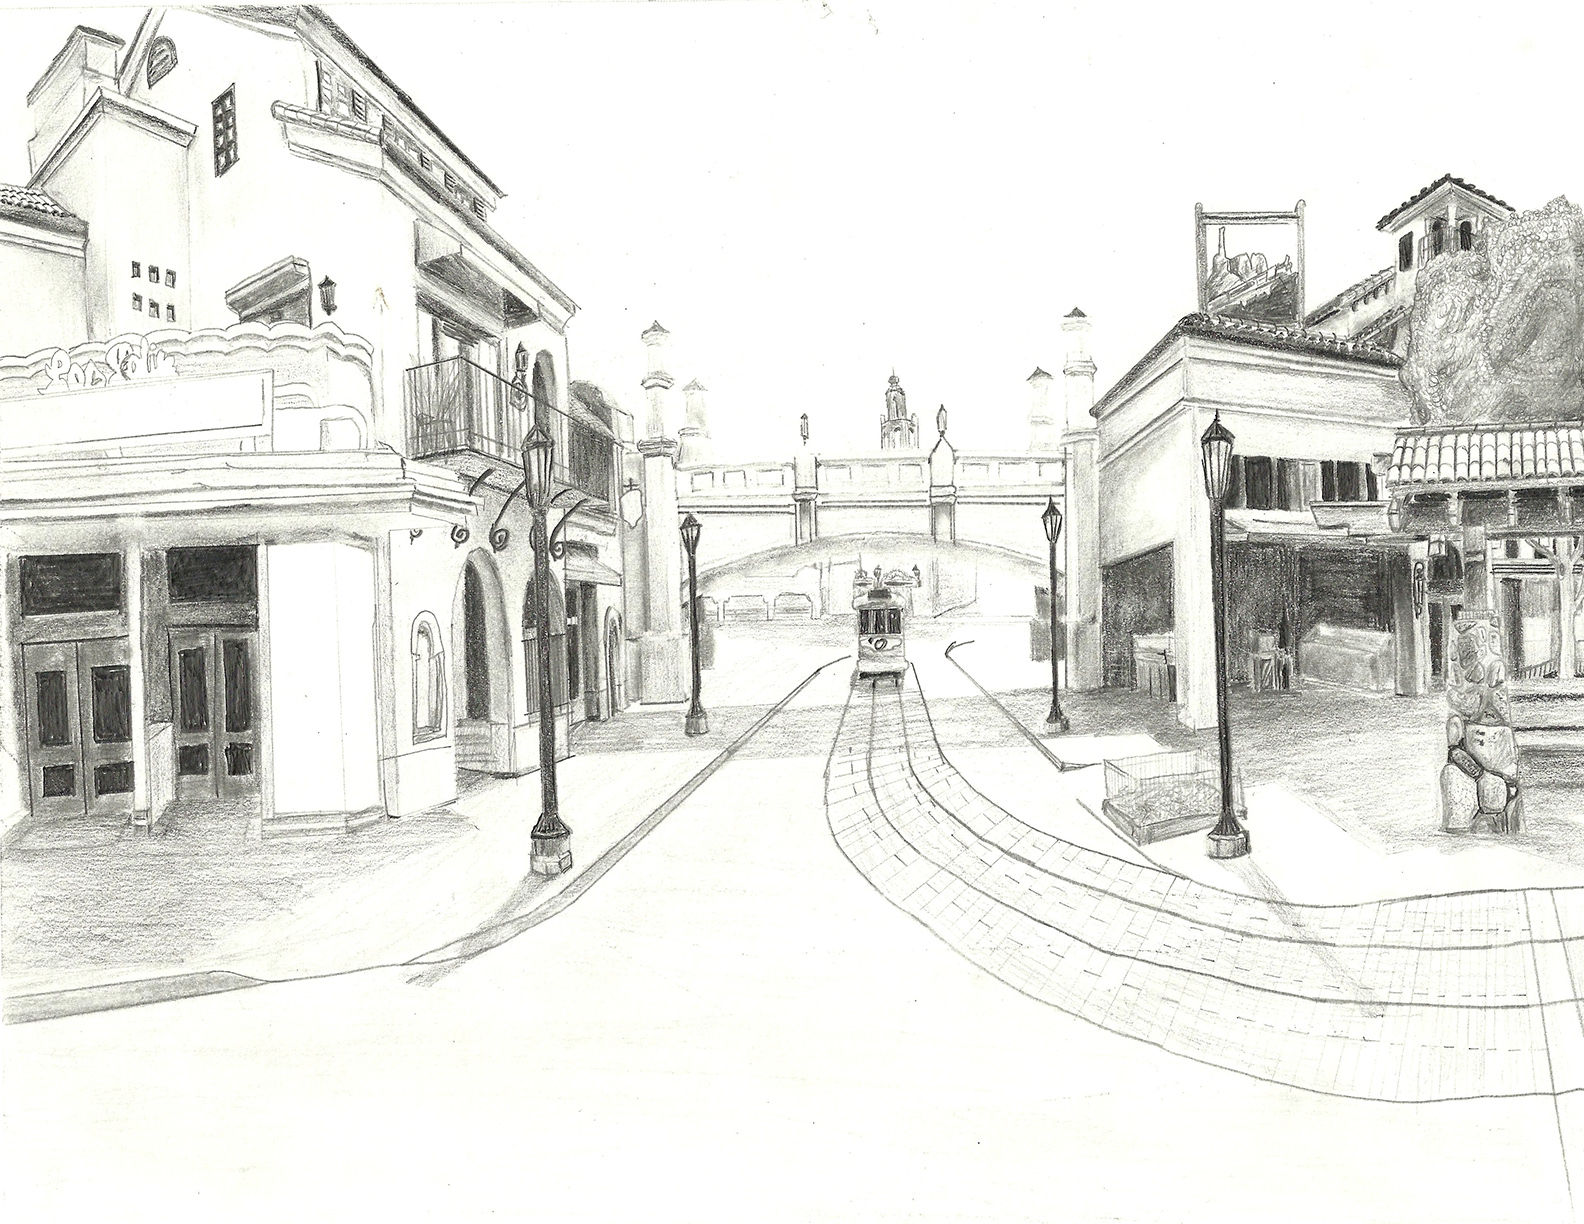 Sketch of Buena Vista Street